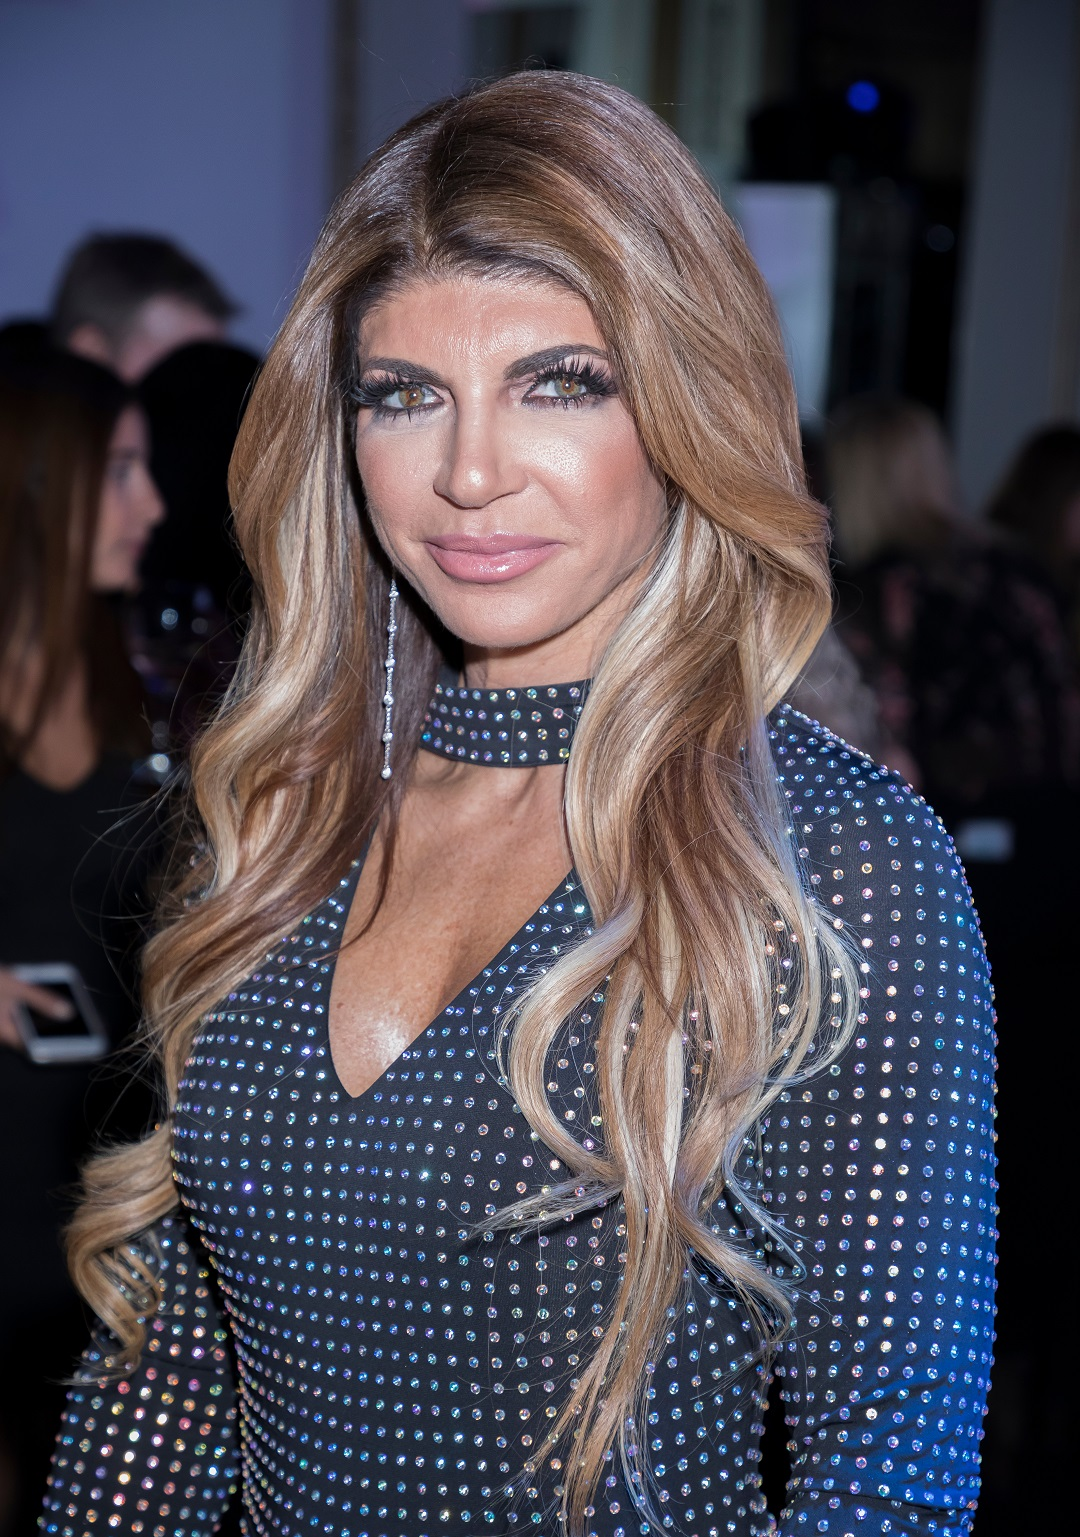 Teresa Giudice Black Crystal Dress